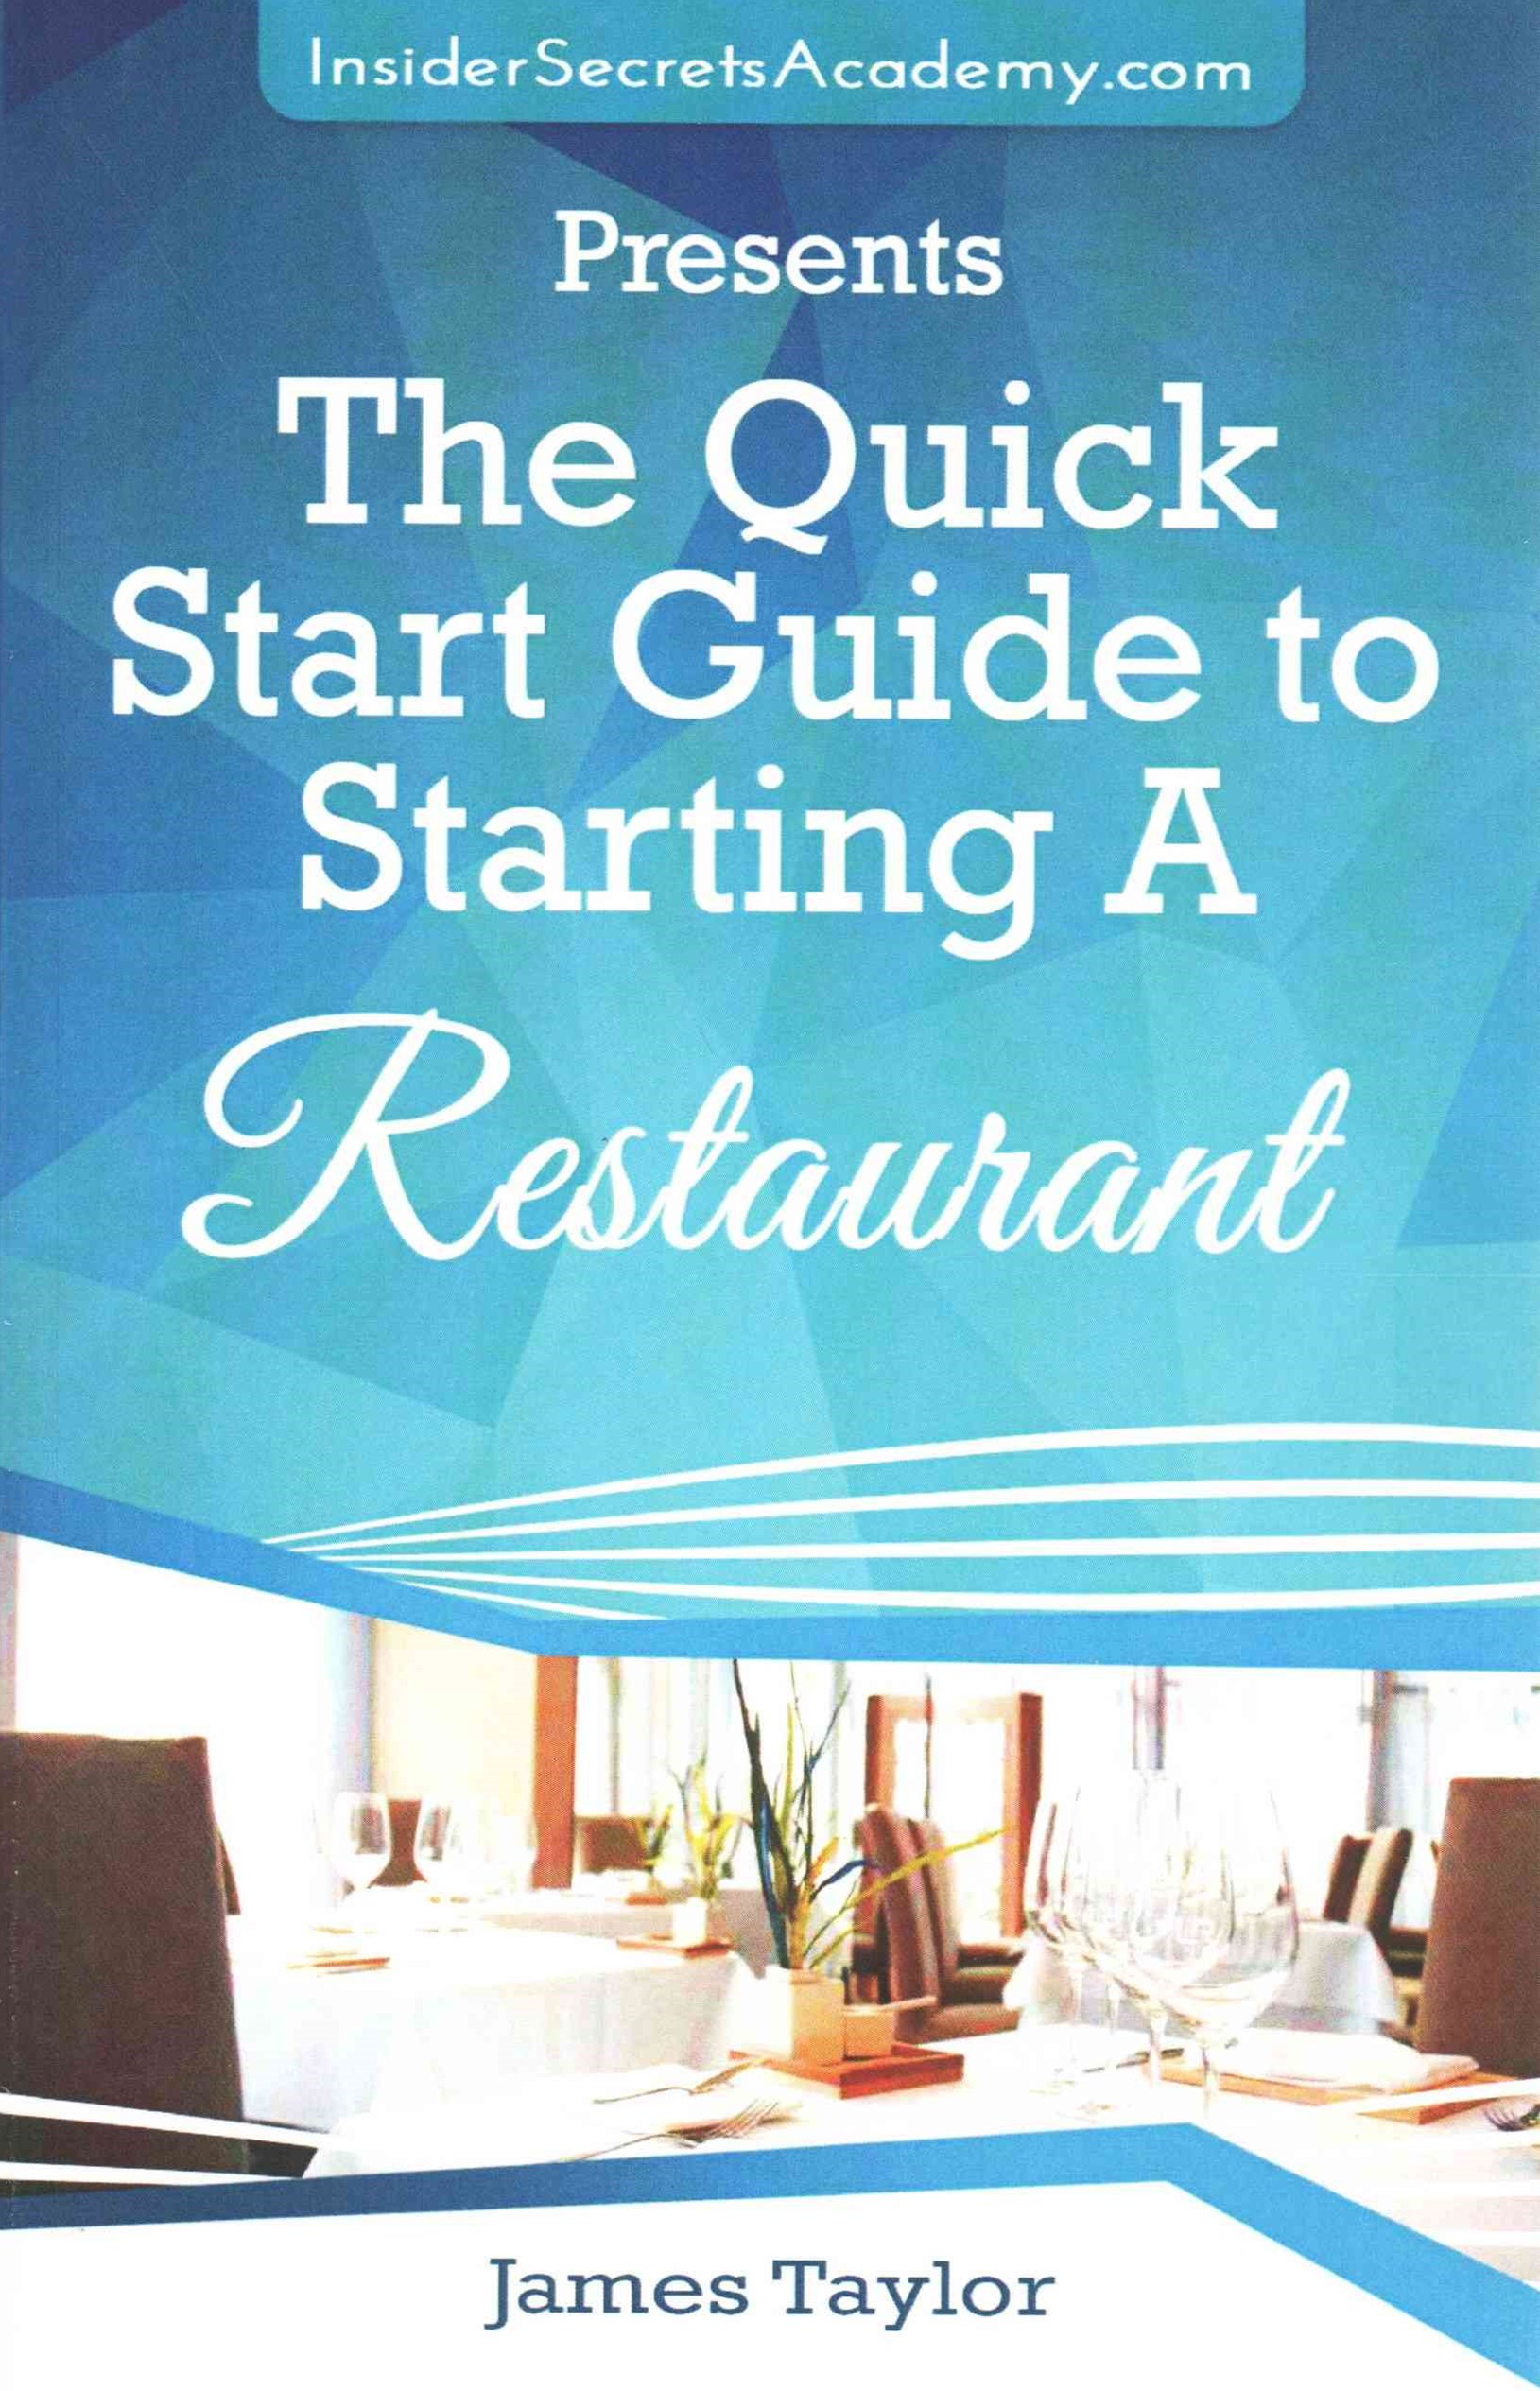 The Quick Start Guide to Starting a Restaurant